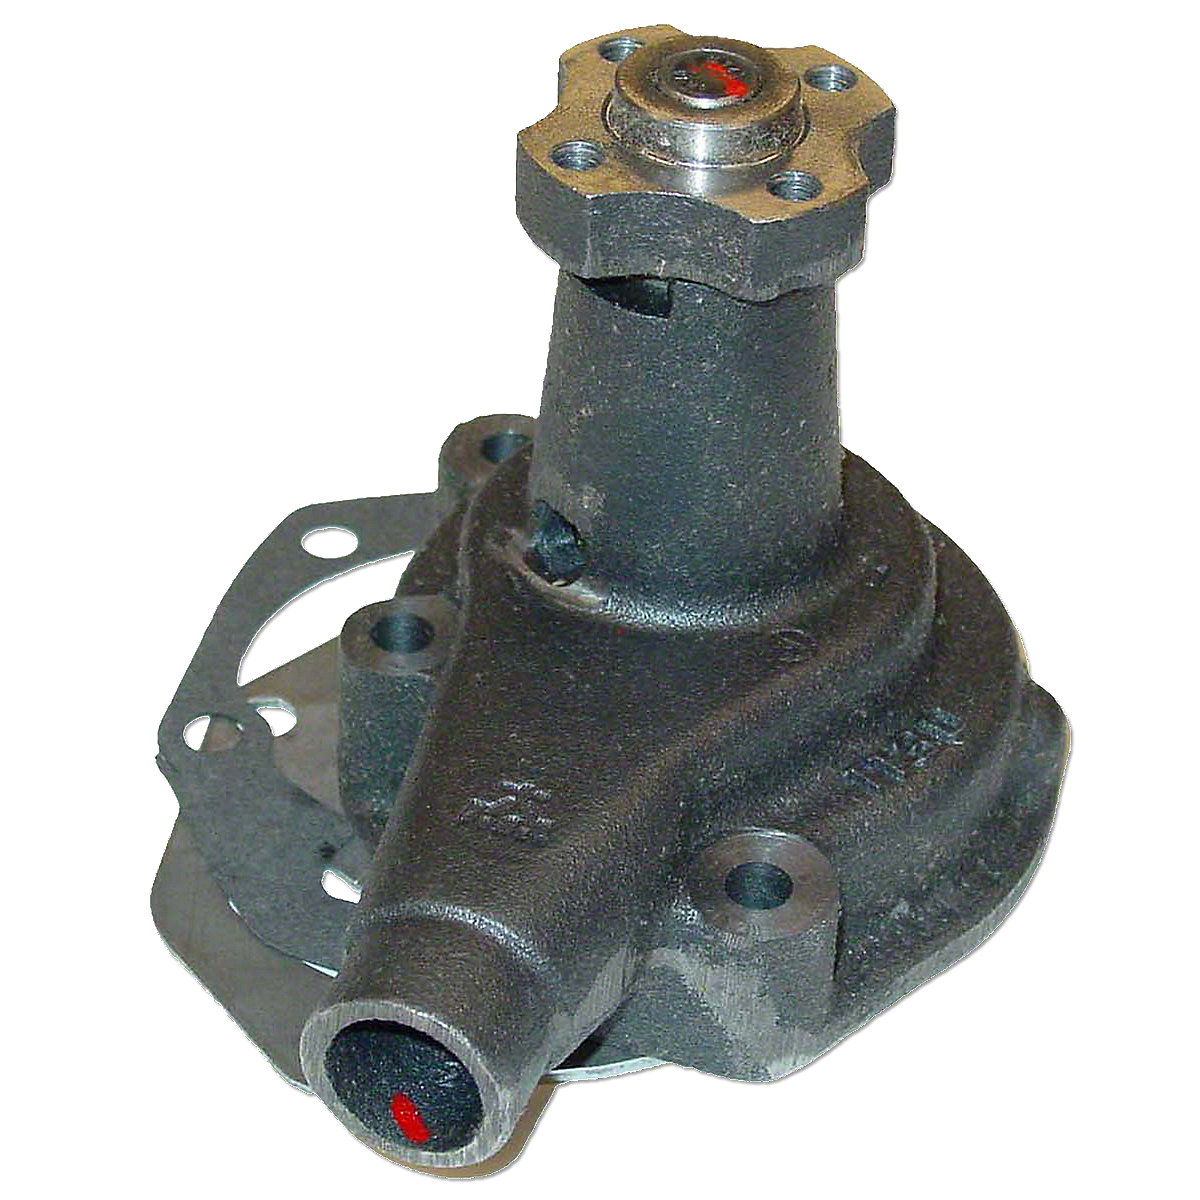 New Water Pump For Allis Chalmers: B, C, CA, D14, IB, RC D10, D12, D15 Early Models With Adjustable Pulley